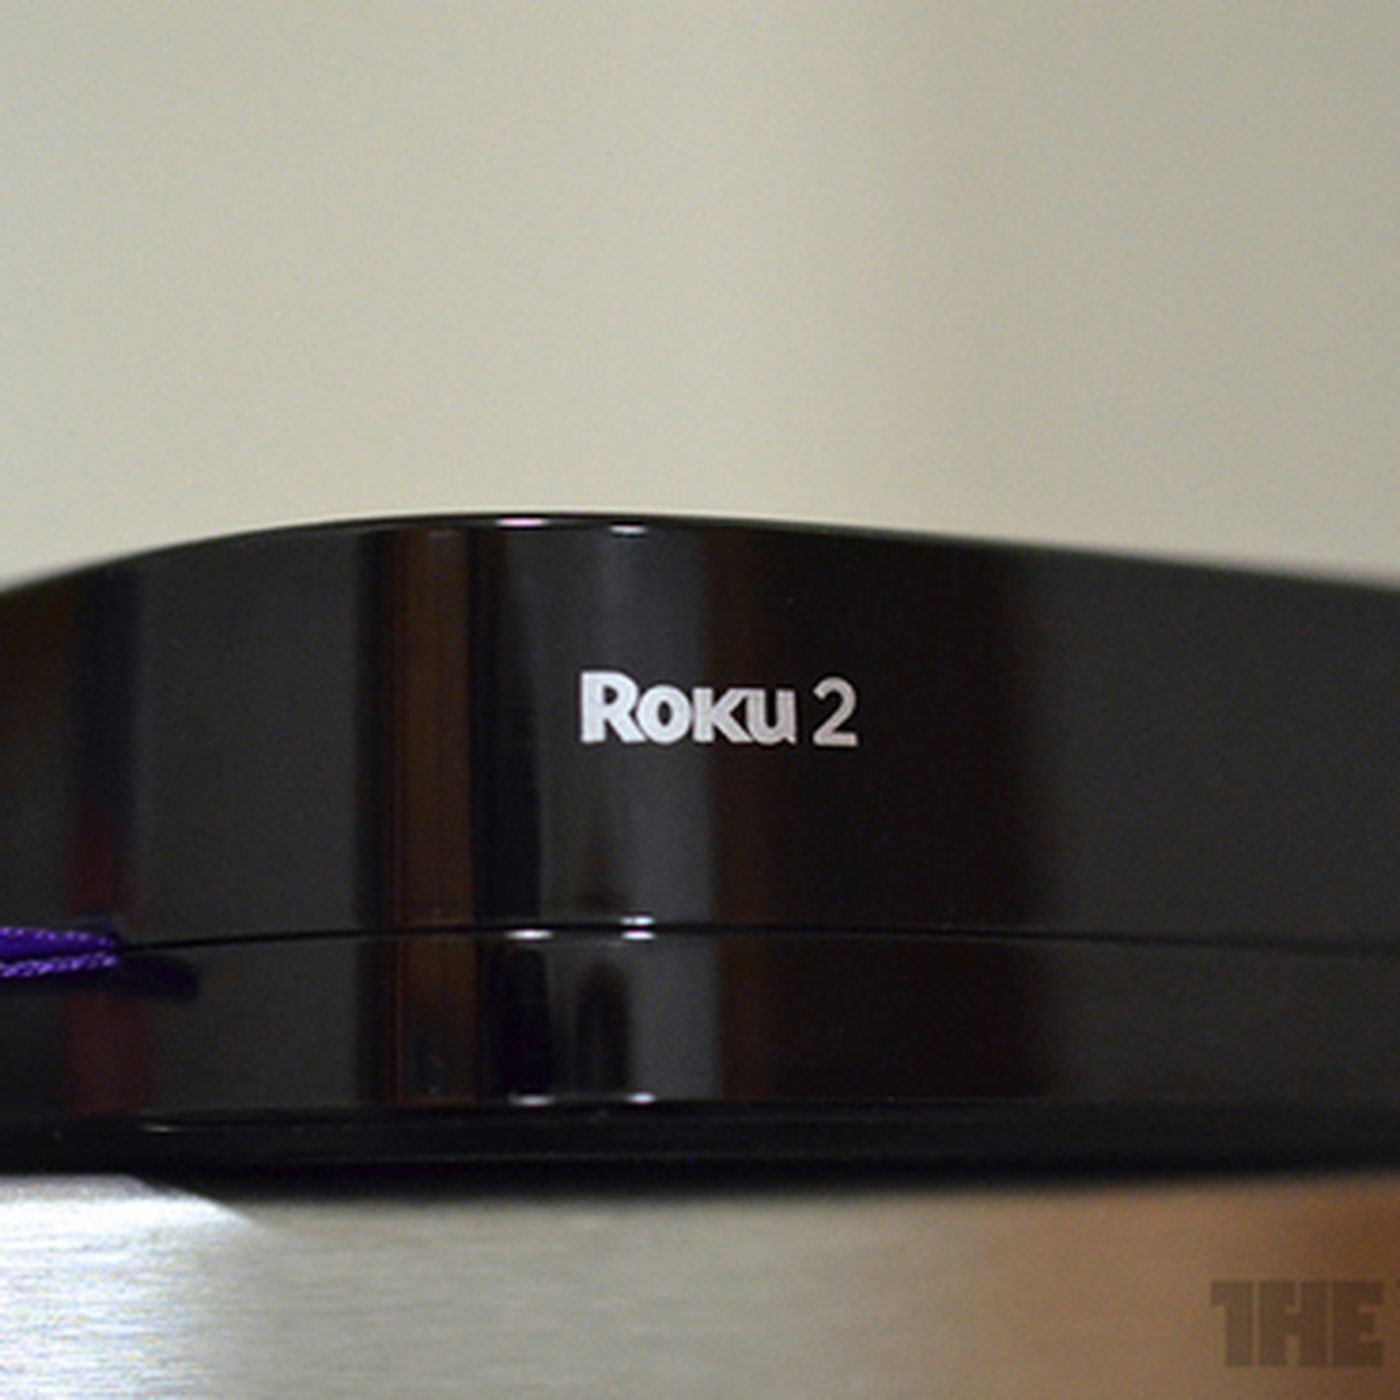 Roku's streaming ecosystem grows with new channels from Fox